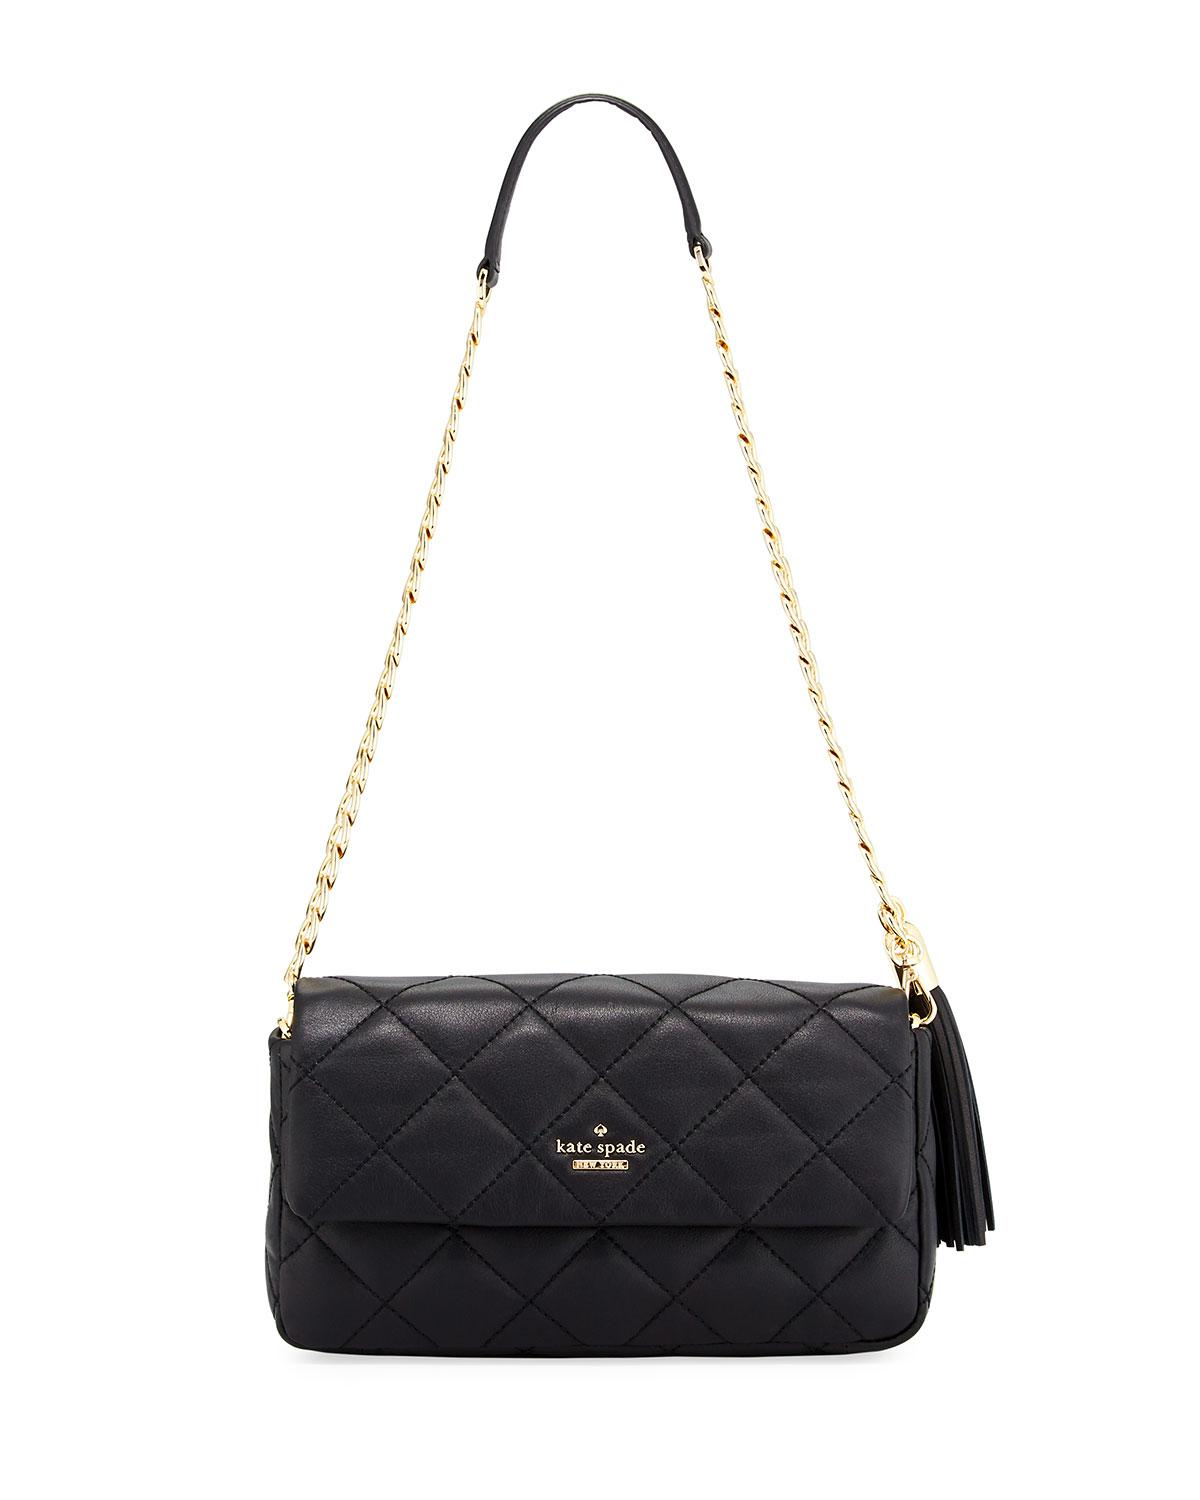 32ca08dcde4c2 Lyst - Kate Spade Emerson Place Serena Quilted Shoulder Bag in Black